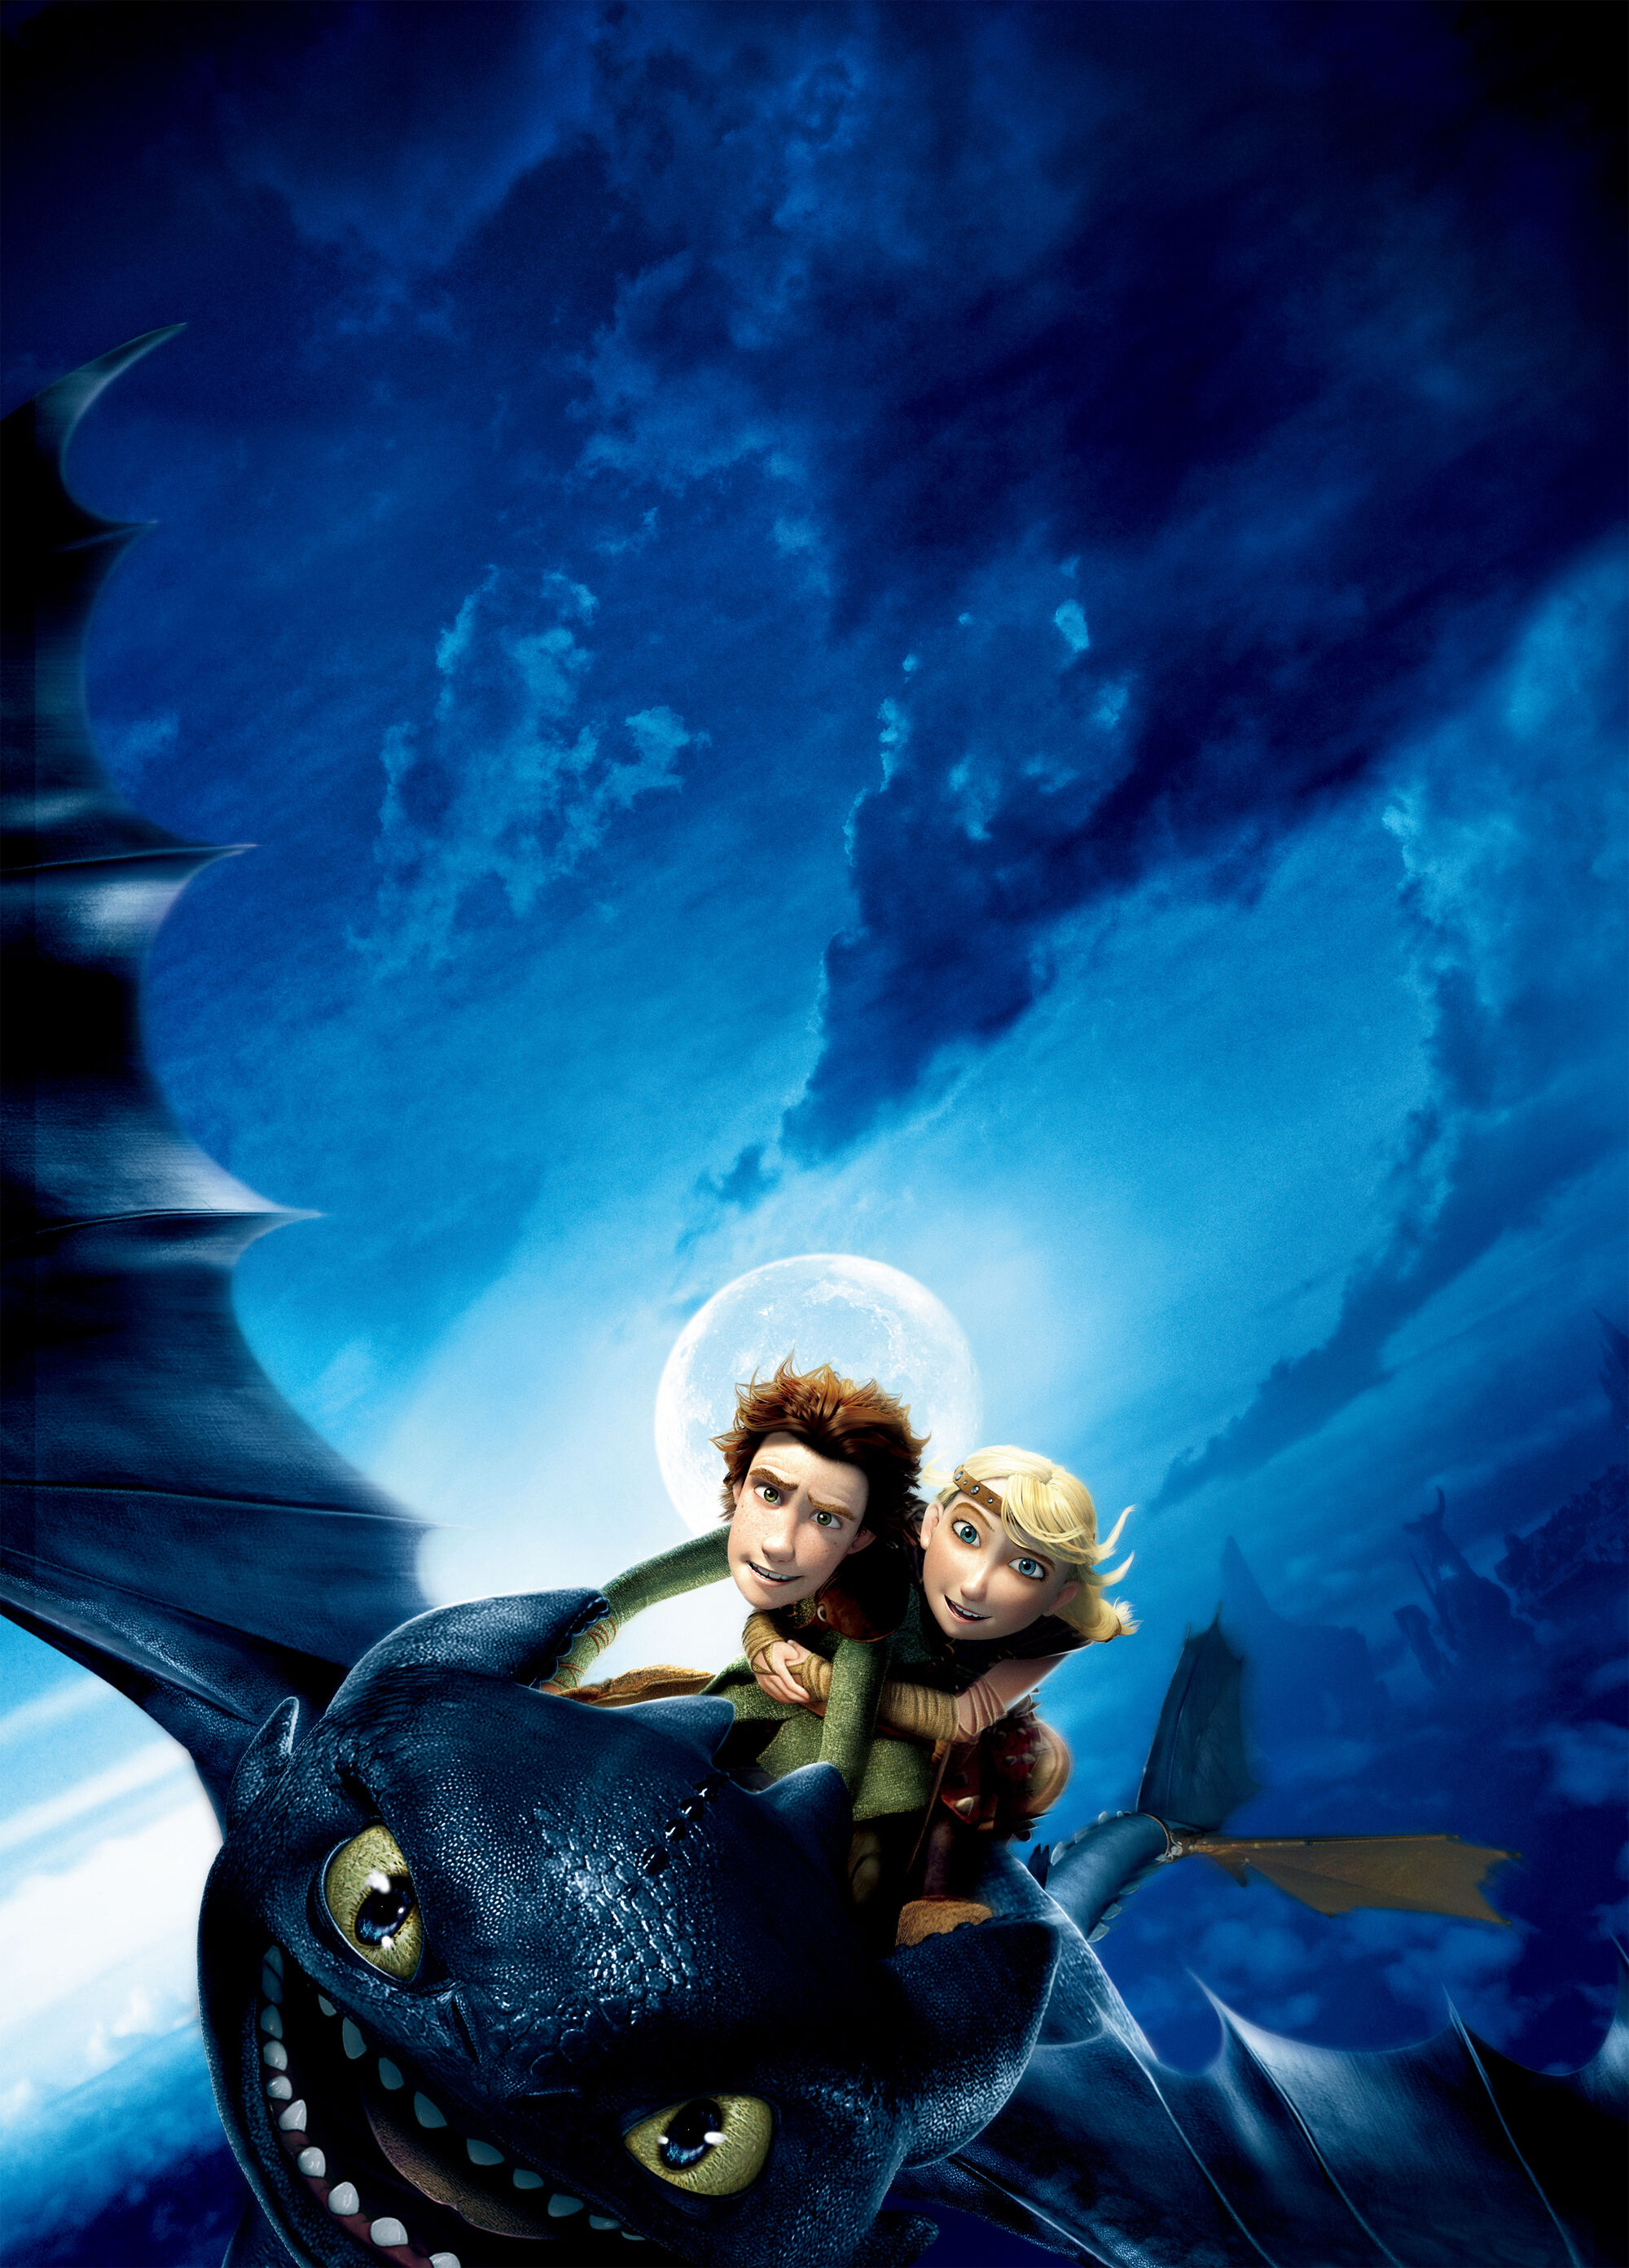 How To Train Your Dragon On Pinterest Image Howtotrainyourdragontextlessg  Dreamworks Animation Wiki Fandom Powered By Wikia